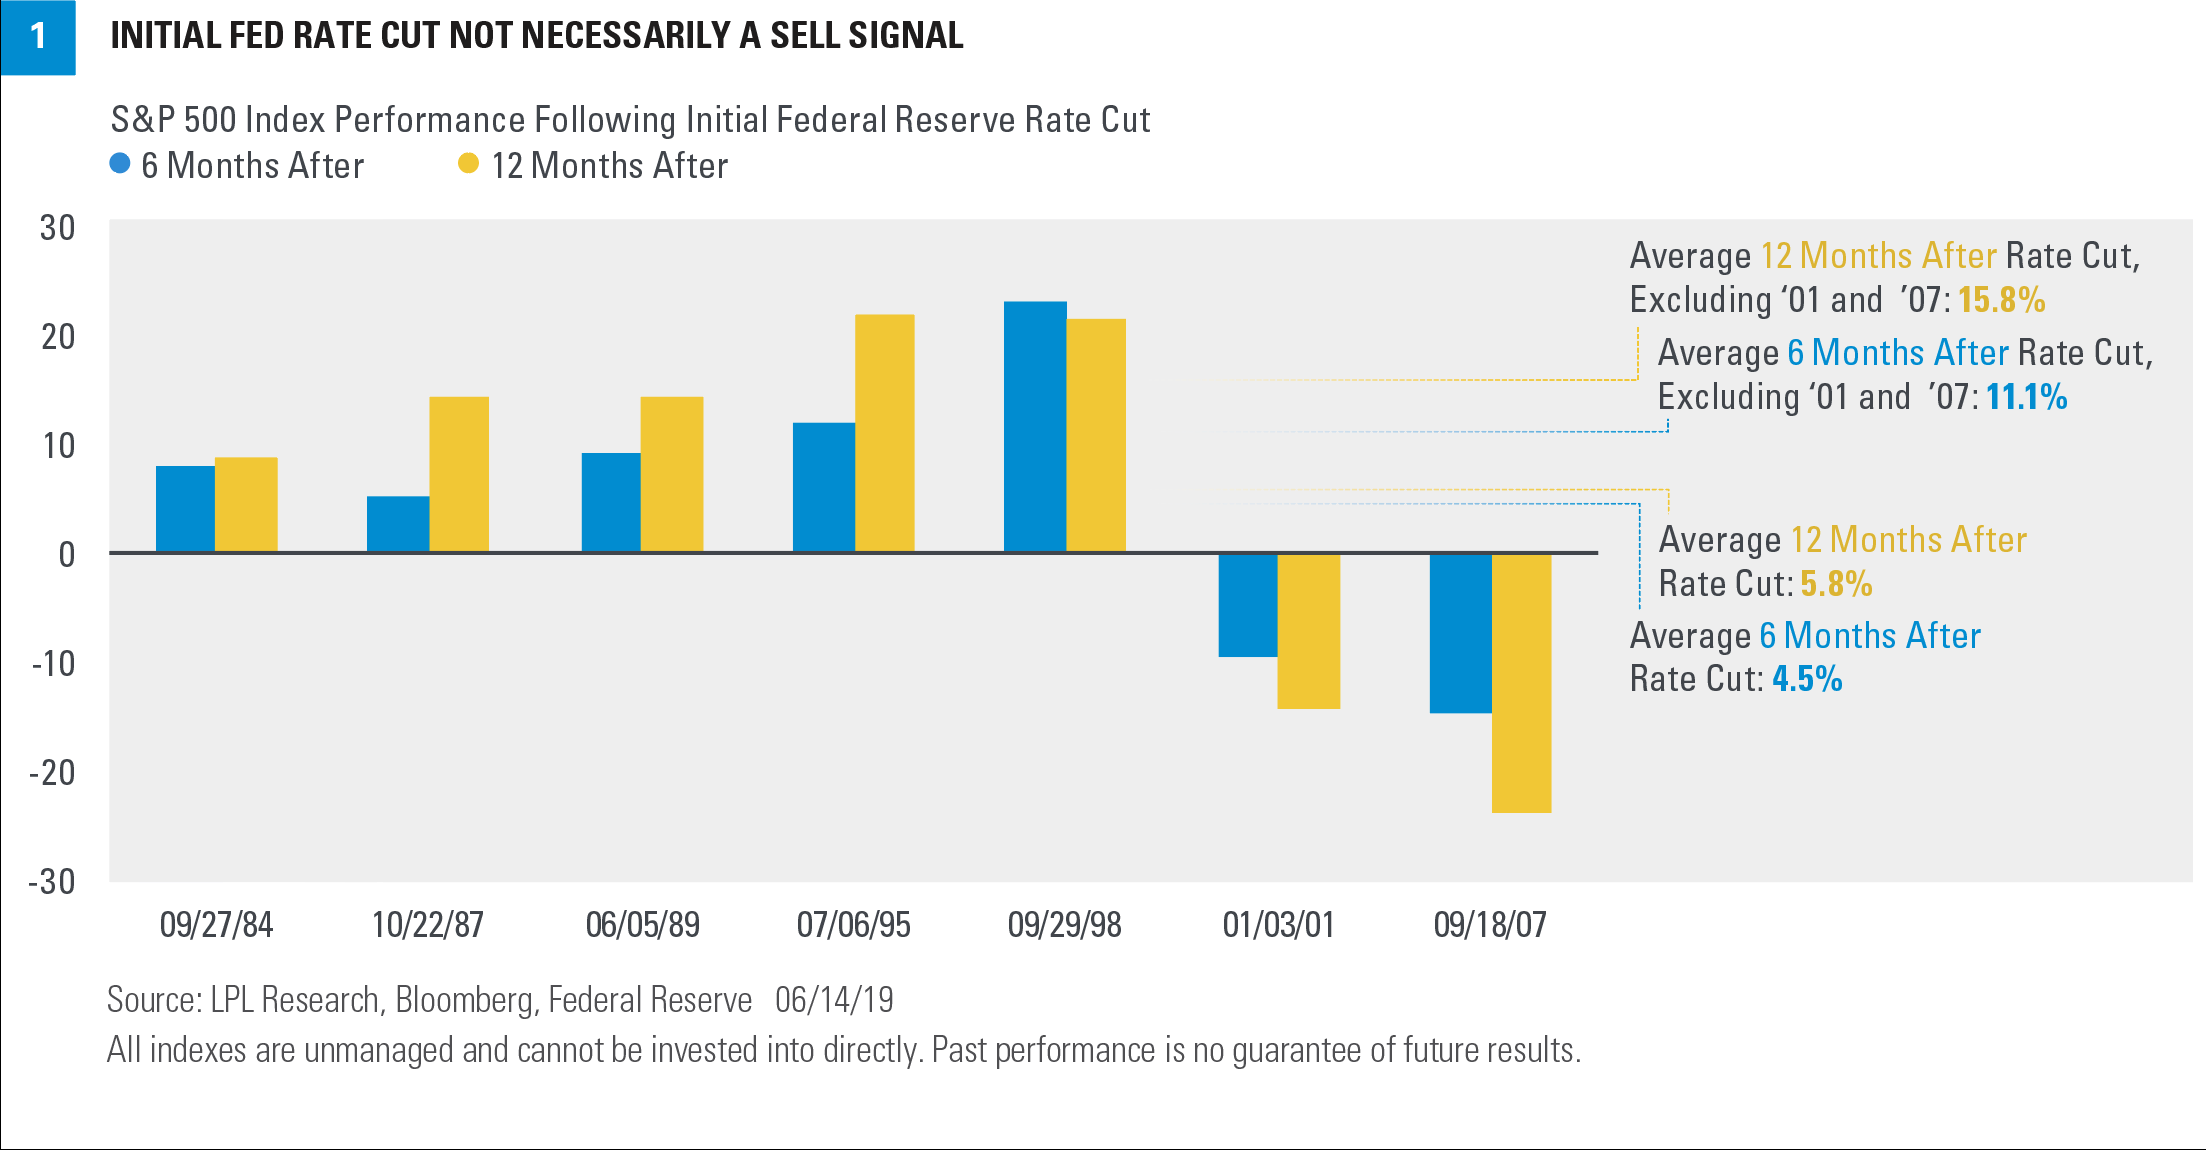 Chart - Initial Fed Rate Cut Not Necessarily A Sell Signal